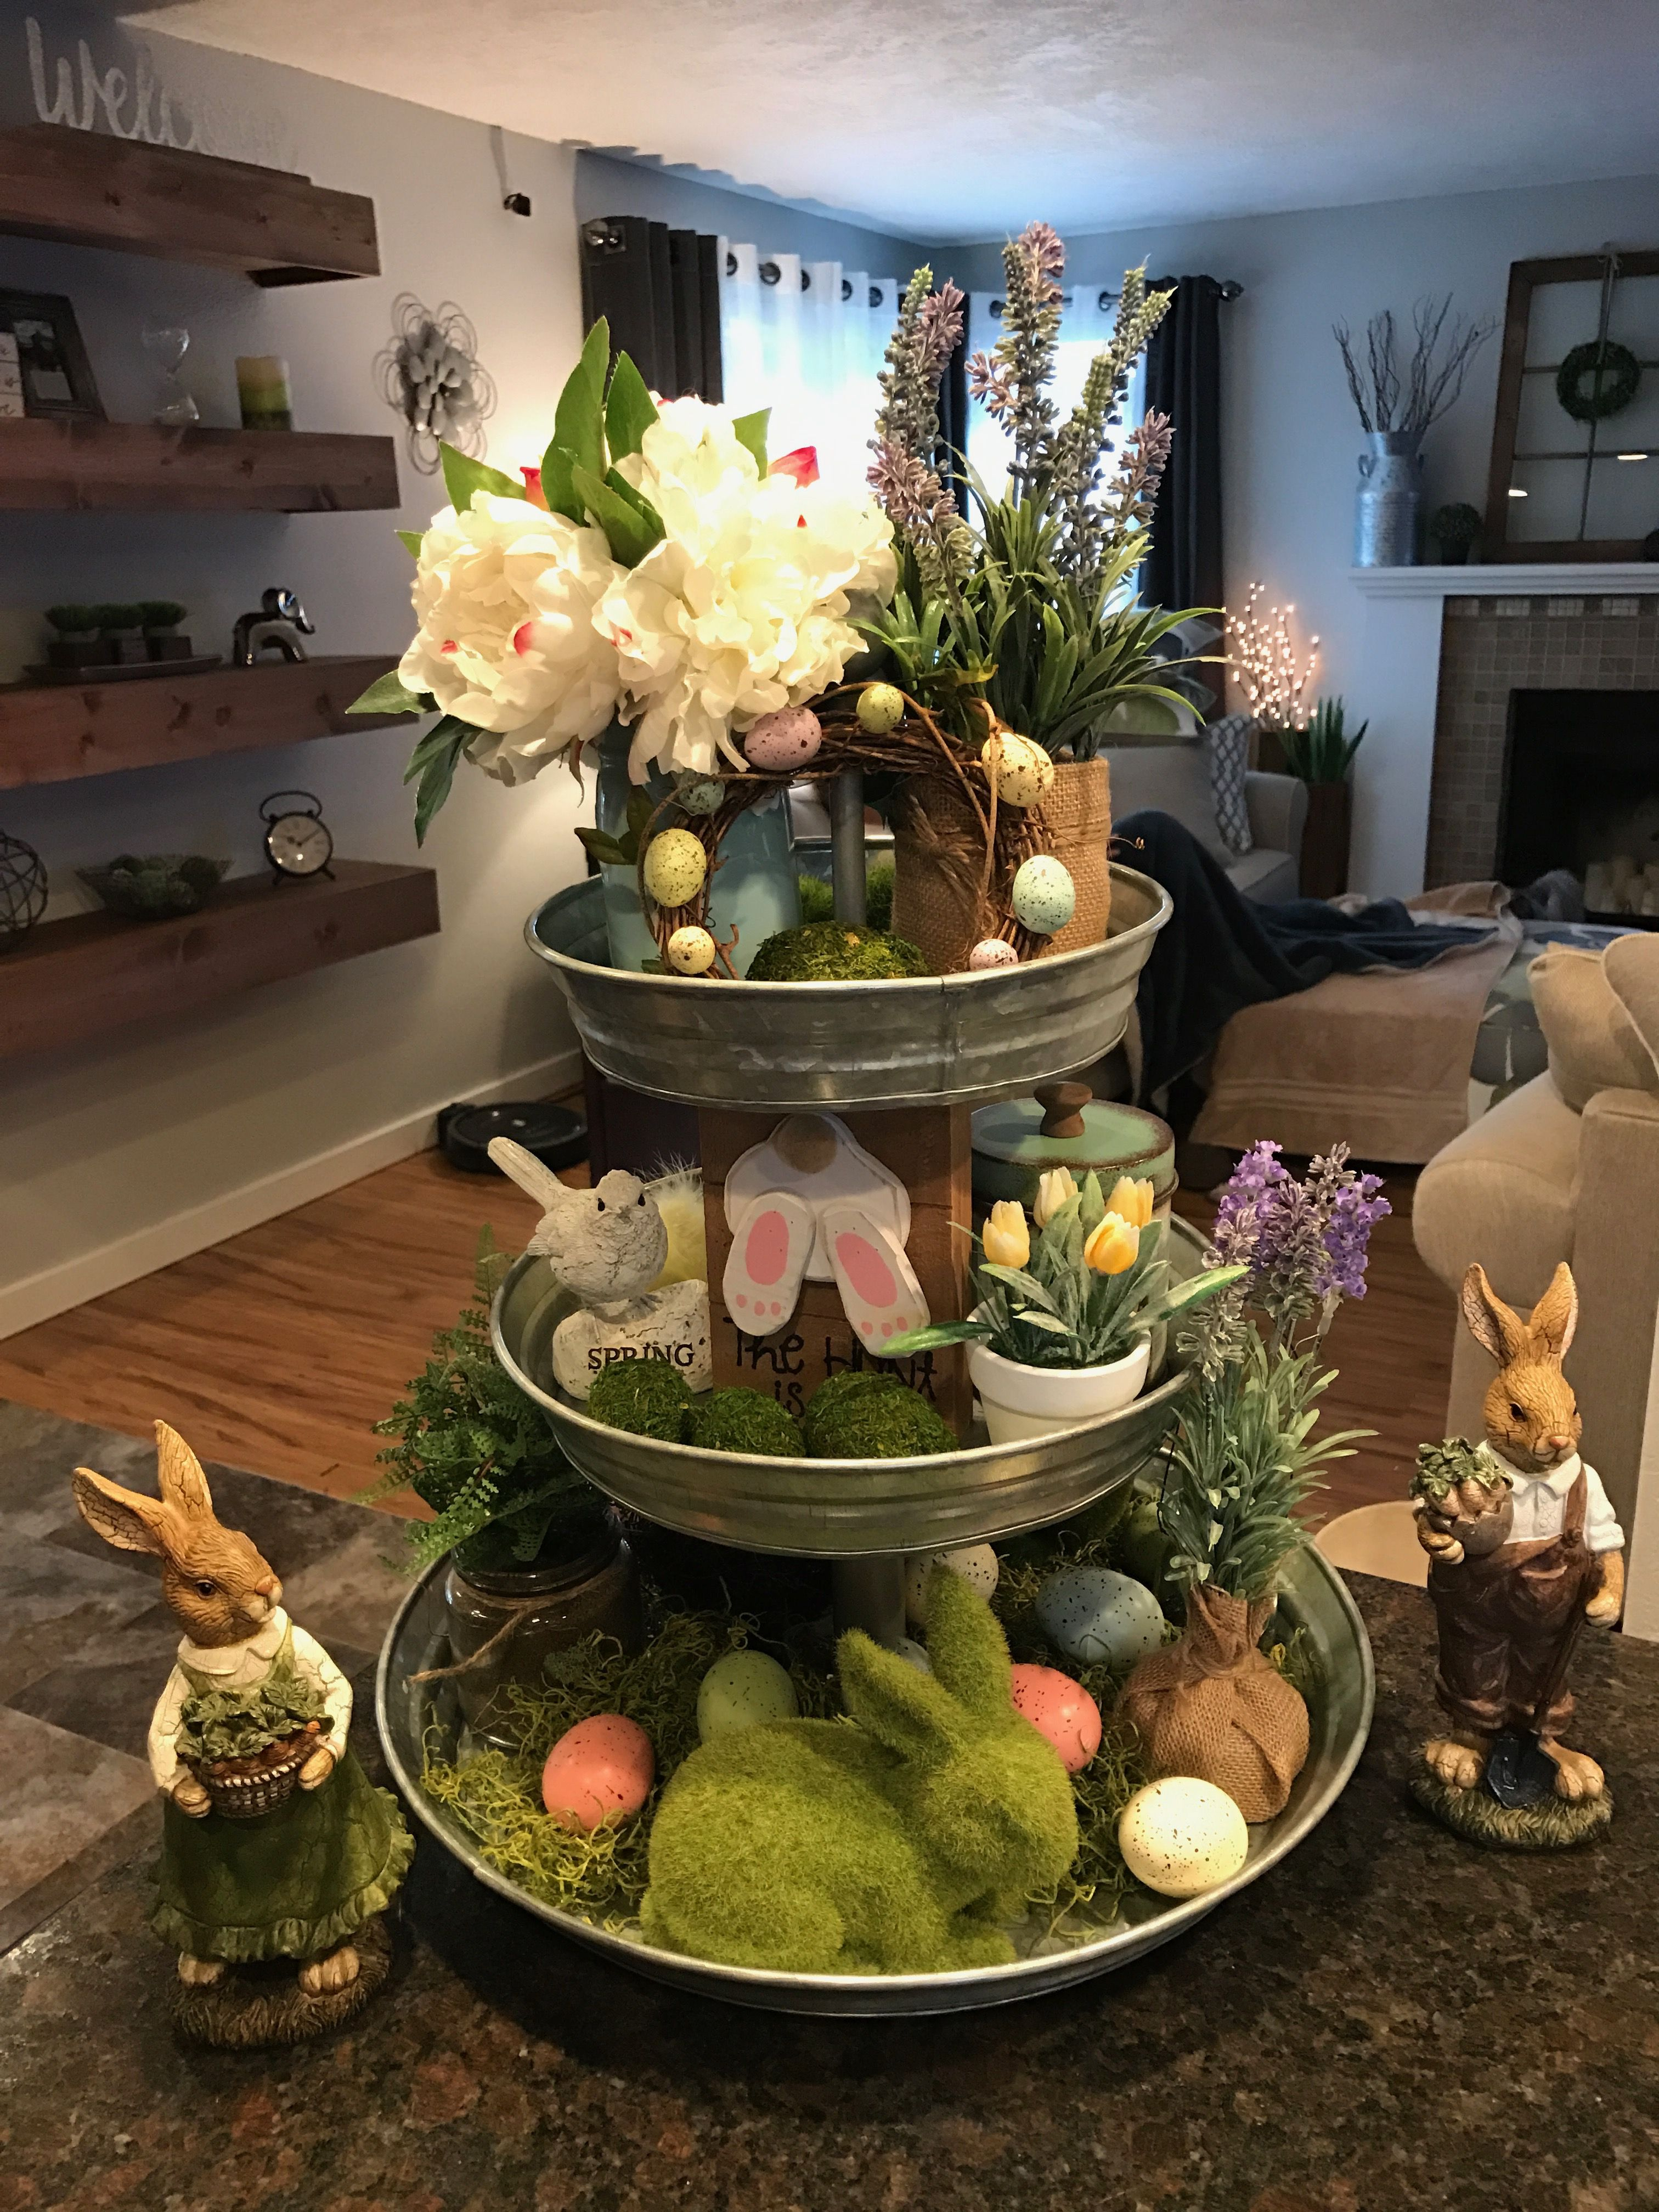 Spring Tiered Decor Diy Easter Decorations Spring Easter Decor Easter Decorations Diy Easy